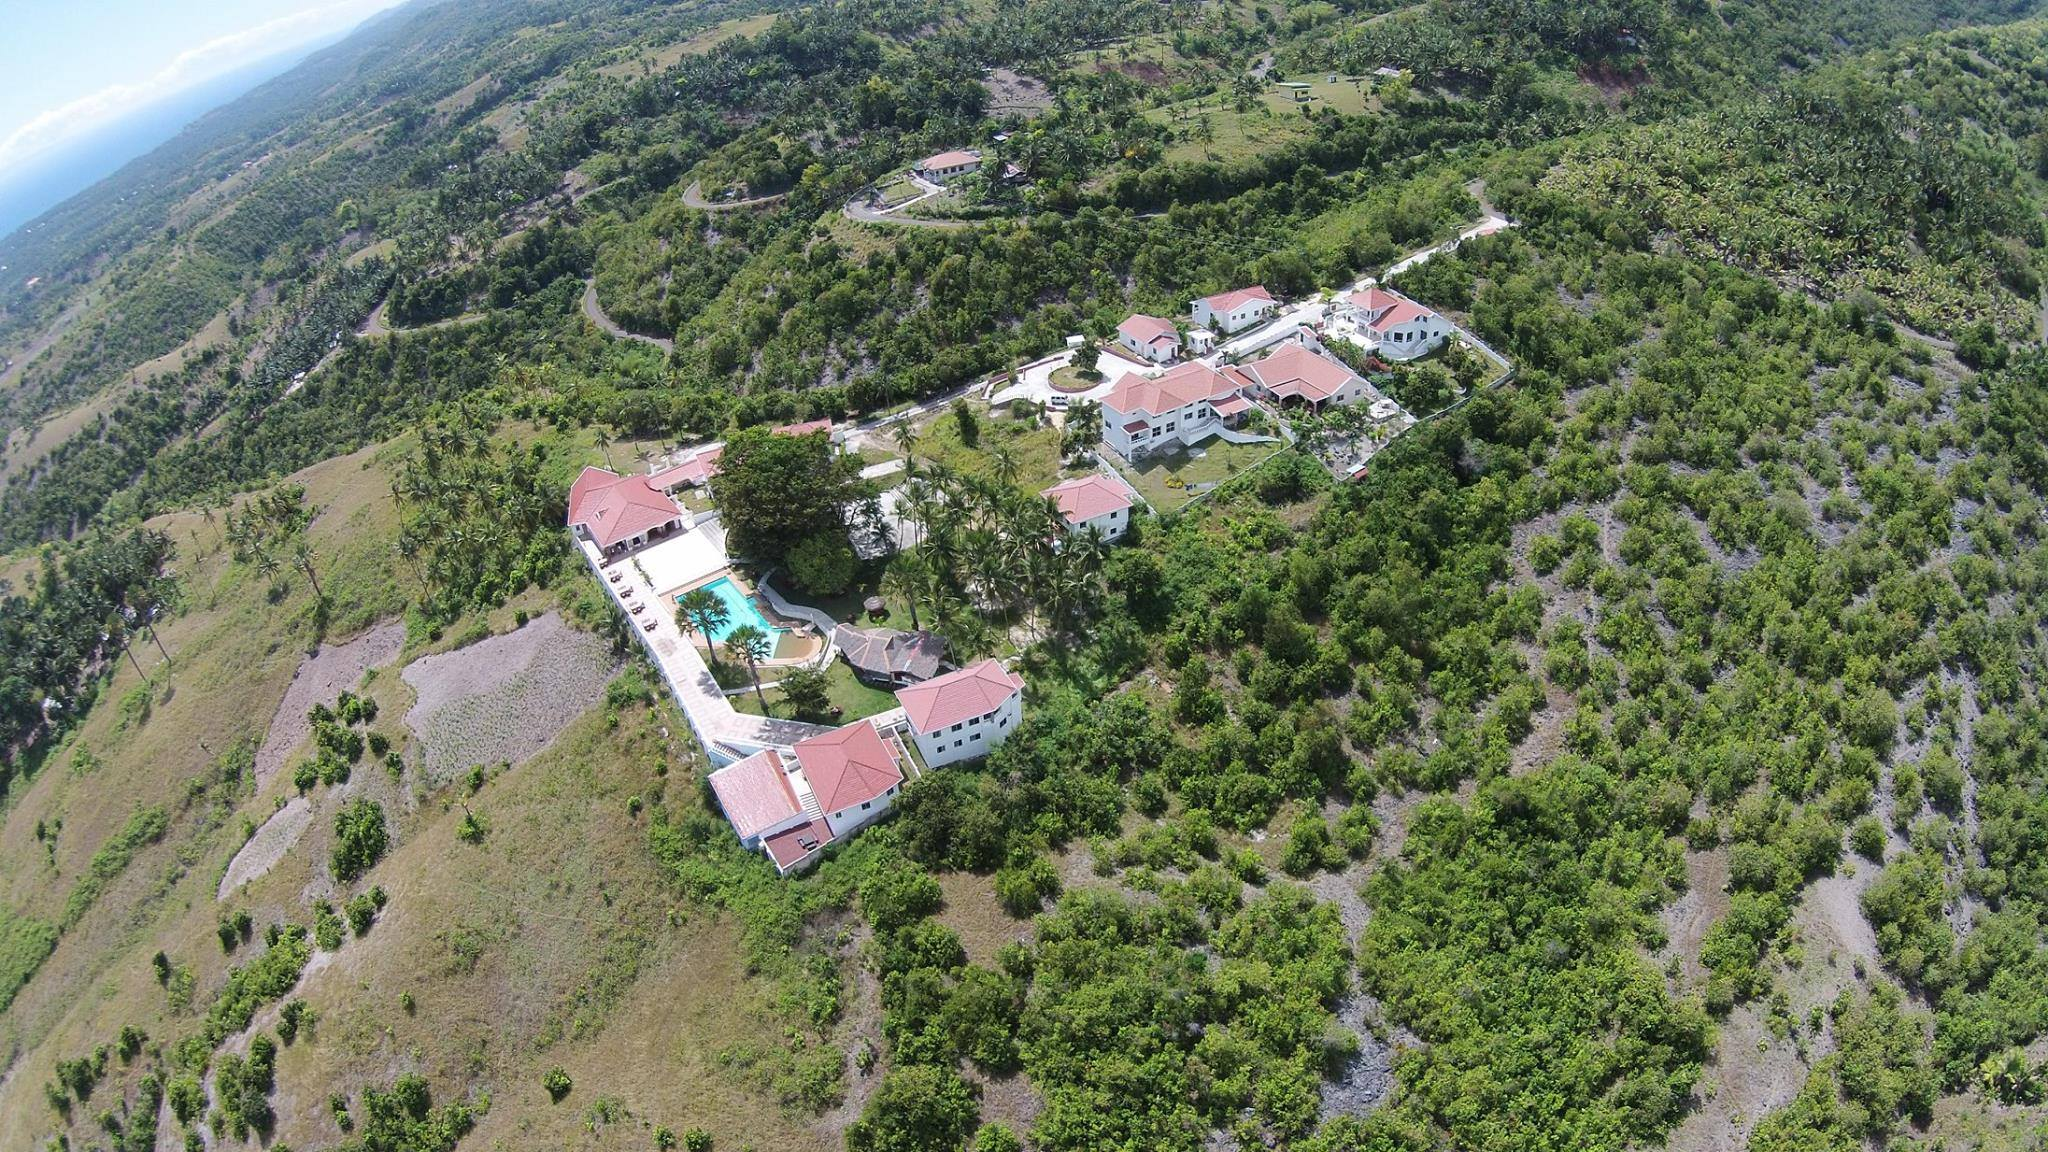 income generating alcoy mountain resort for sale alcoy, cebu - cebu